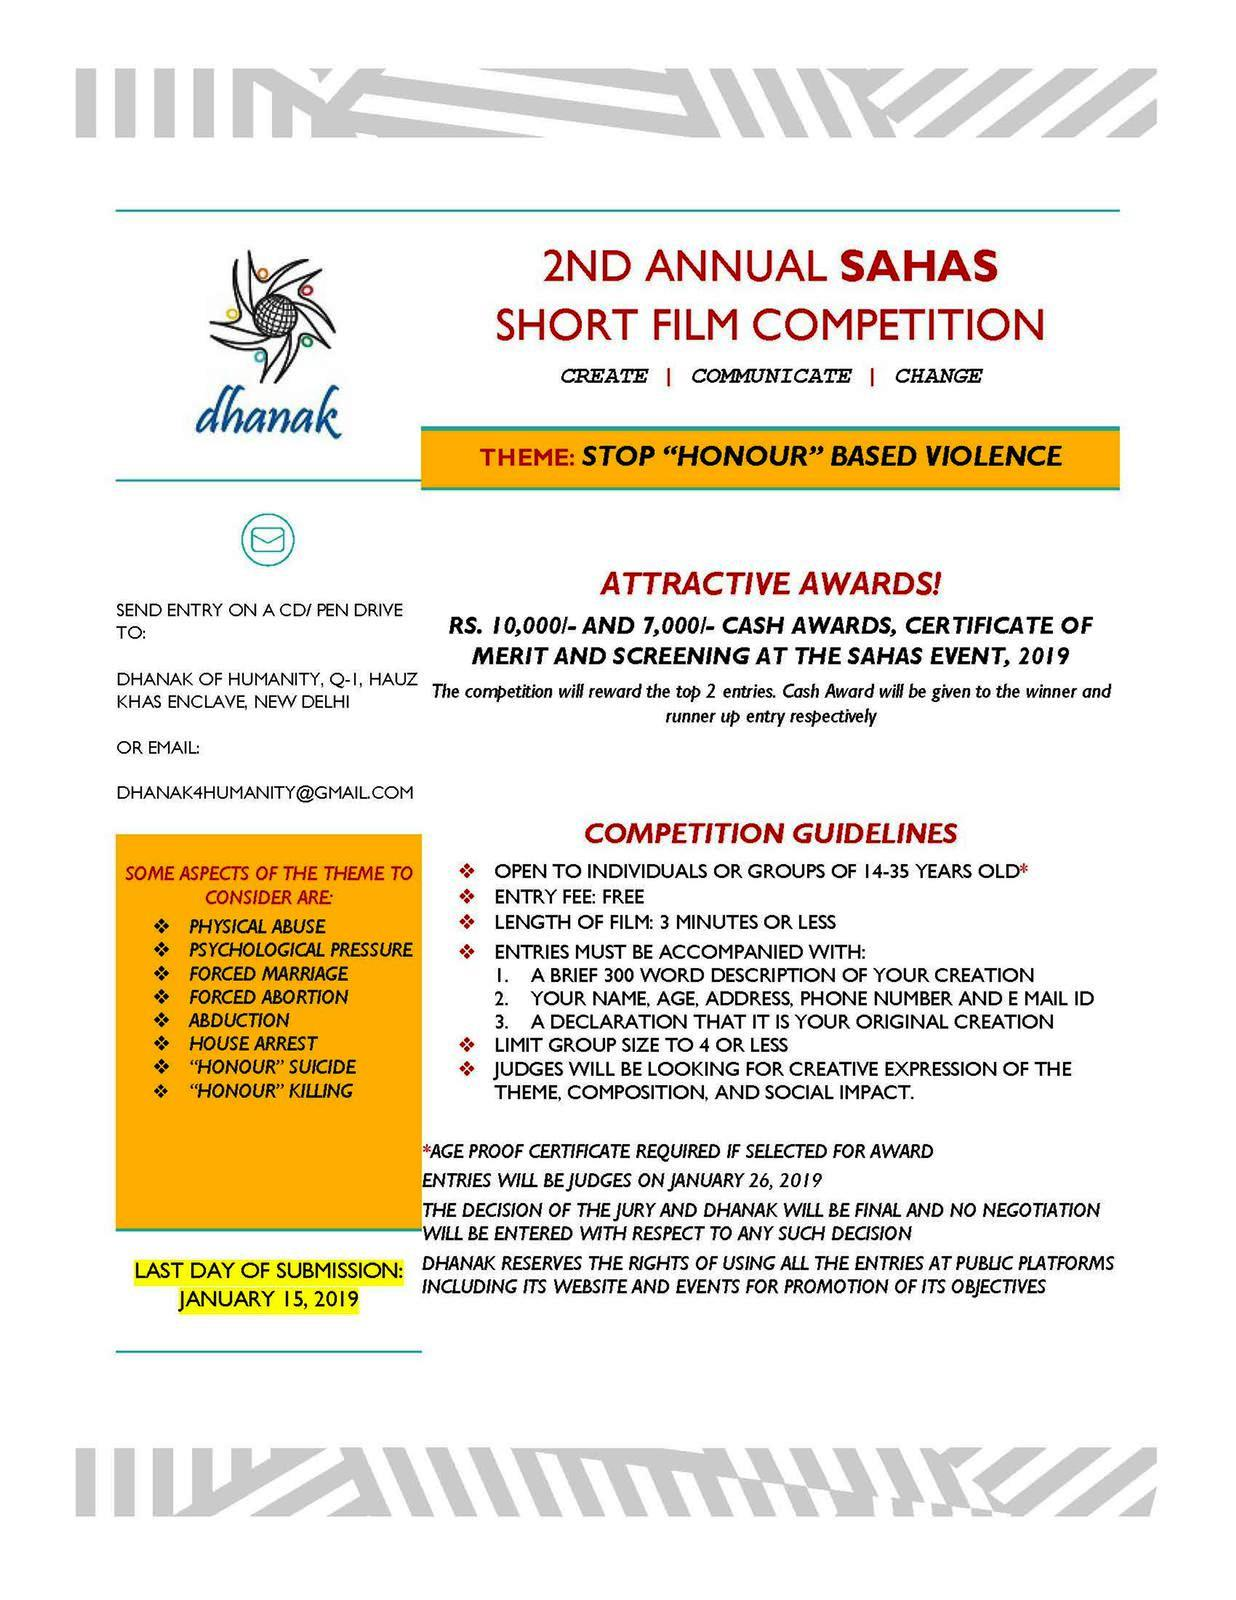 2nd Annual SAHAS short Film Competition